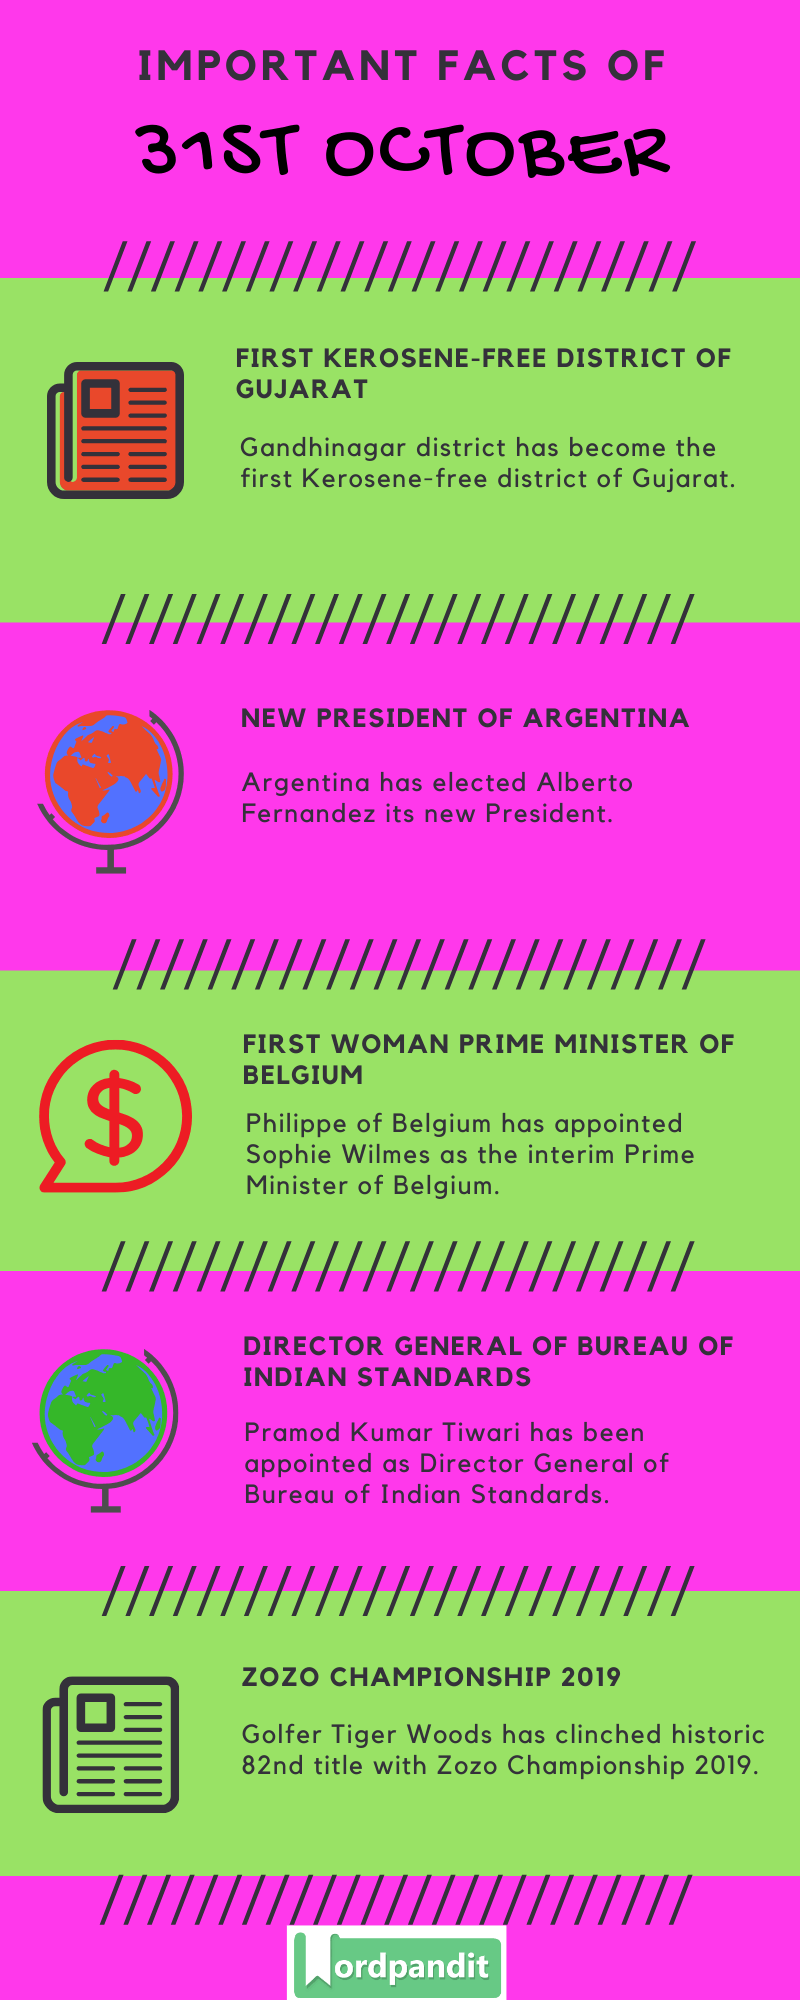 Daily Current Affairs 31 October 2019 Current Affairs Quiz 31 October 2019 Current Affairs Infographic